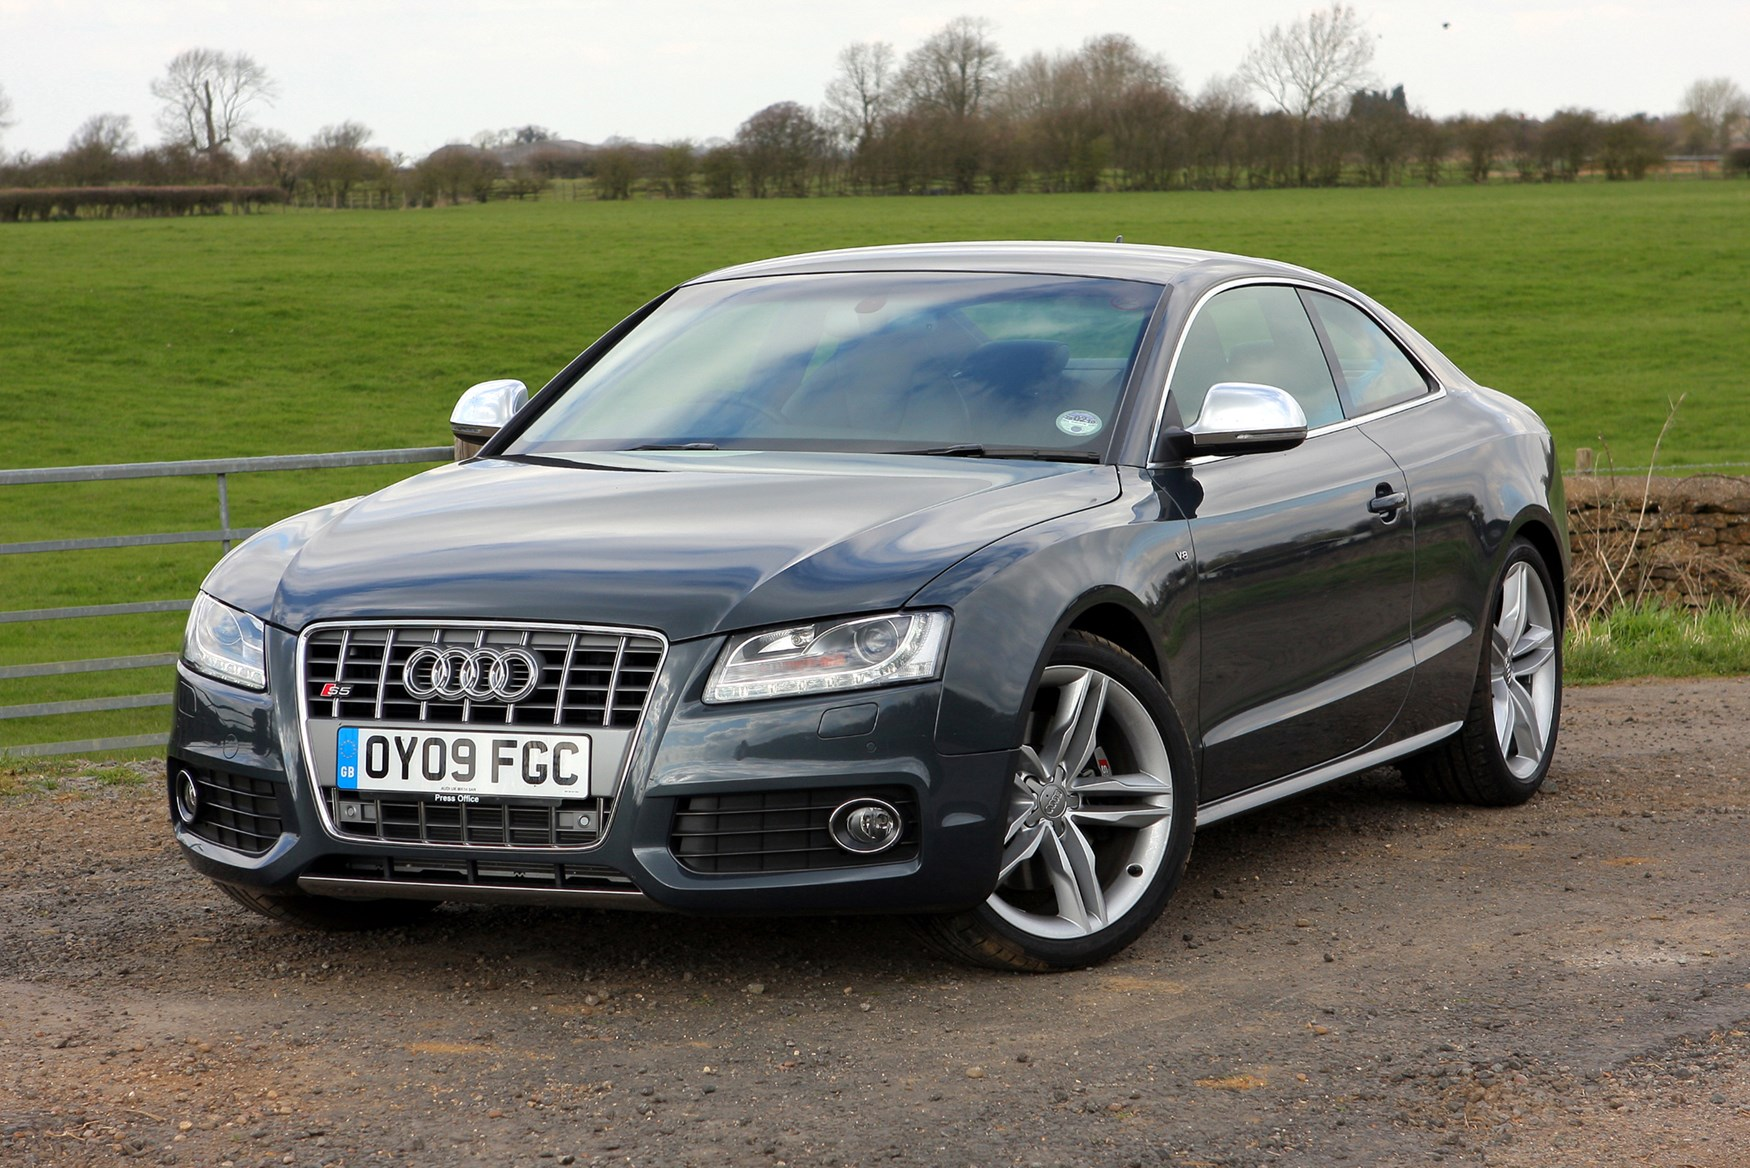 Used Audi A5 Hatchback Cars for Sale  Gumtree